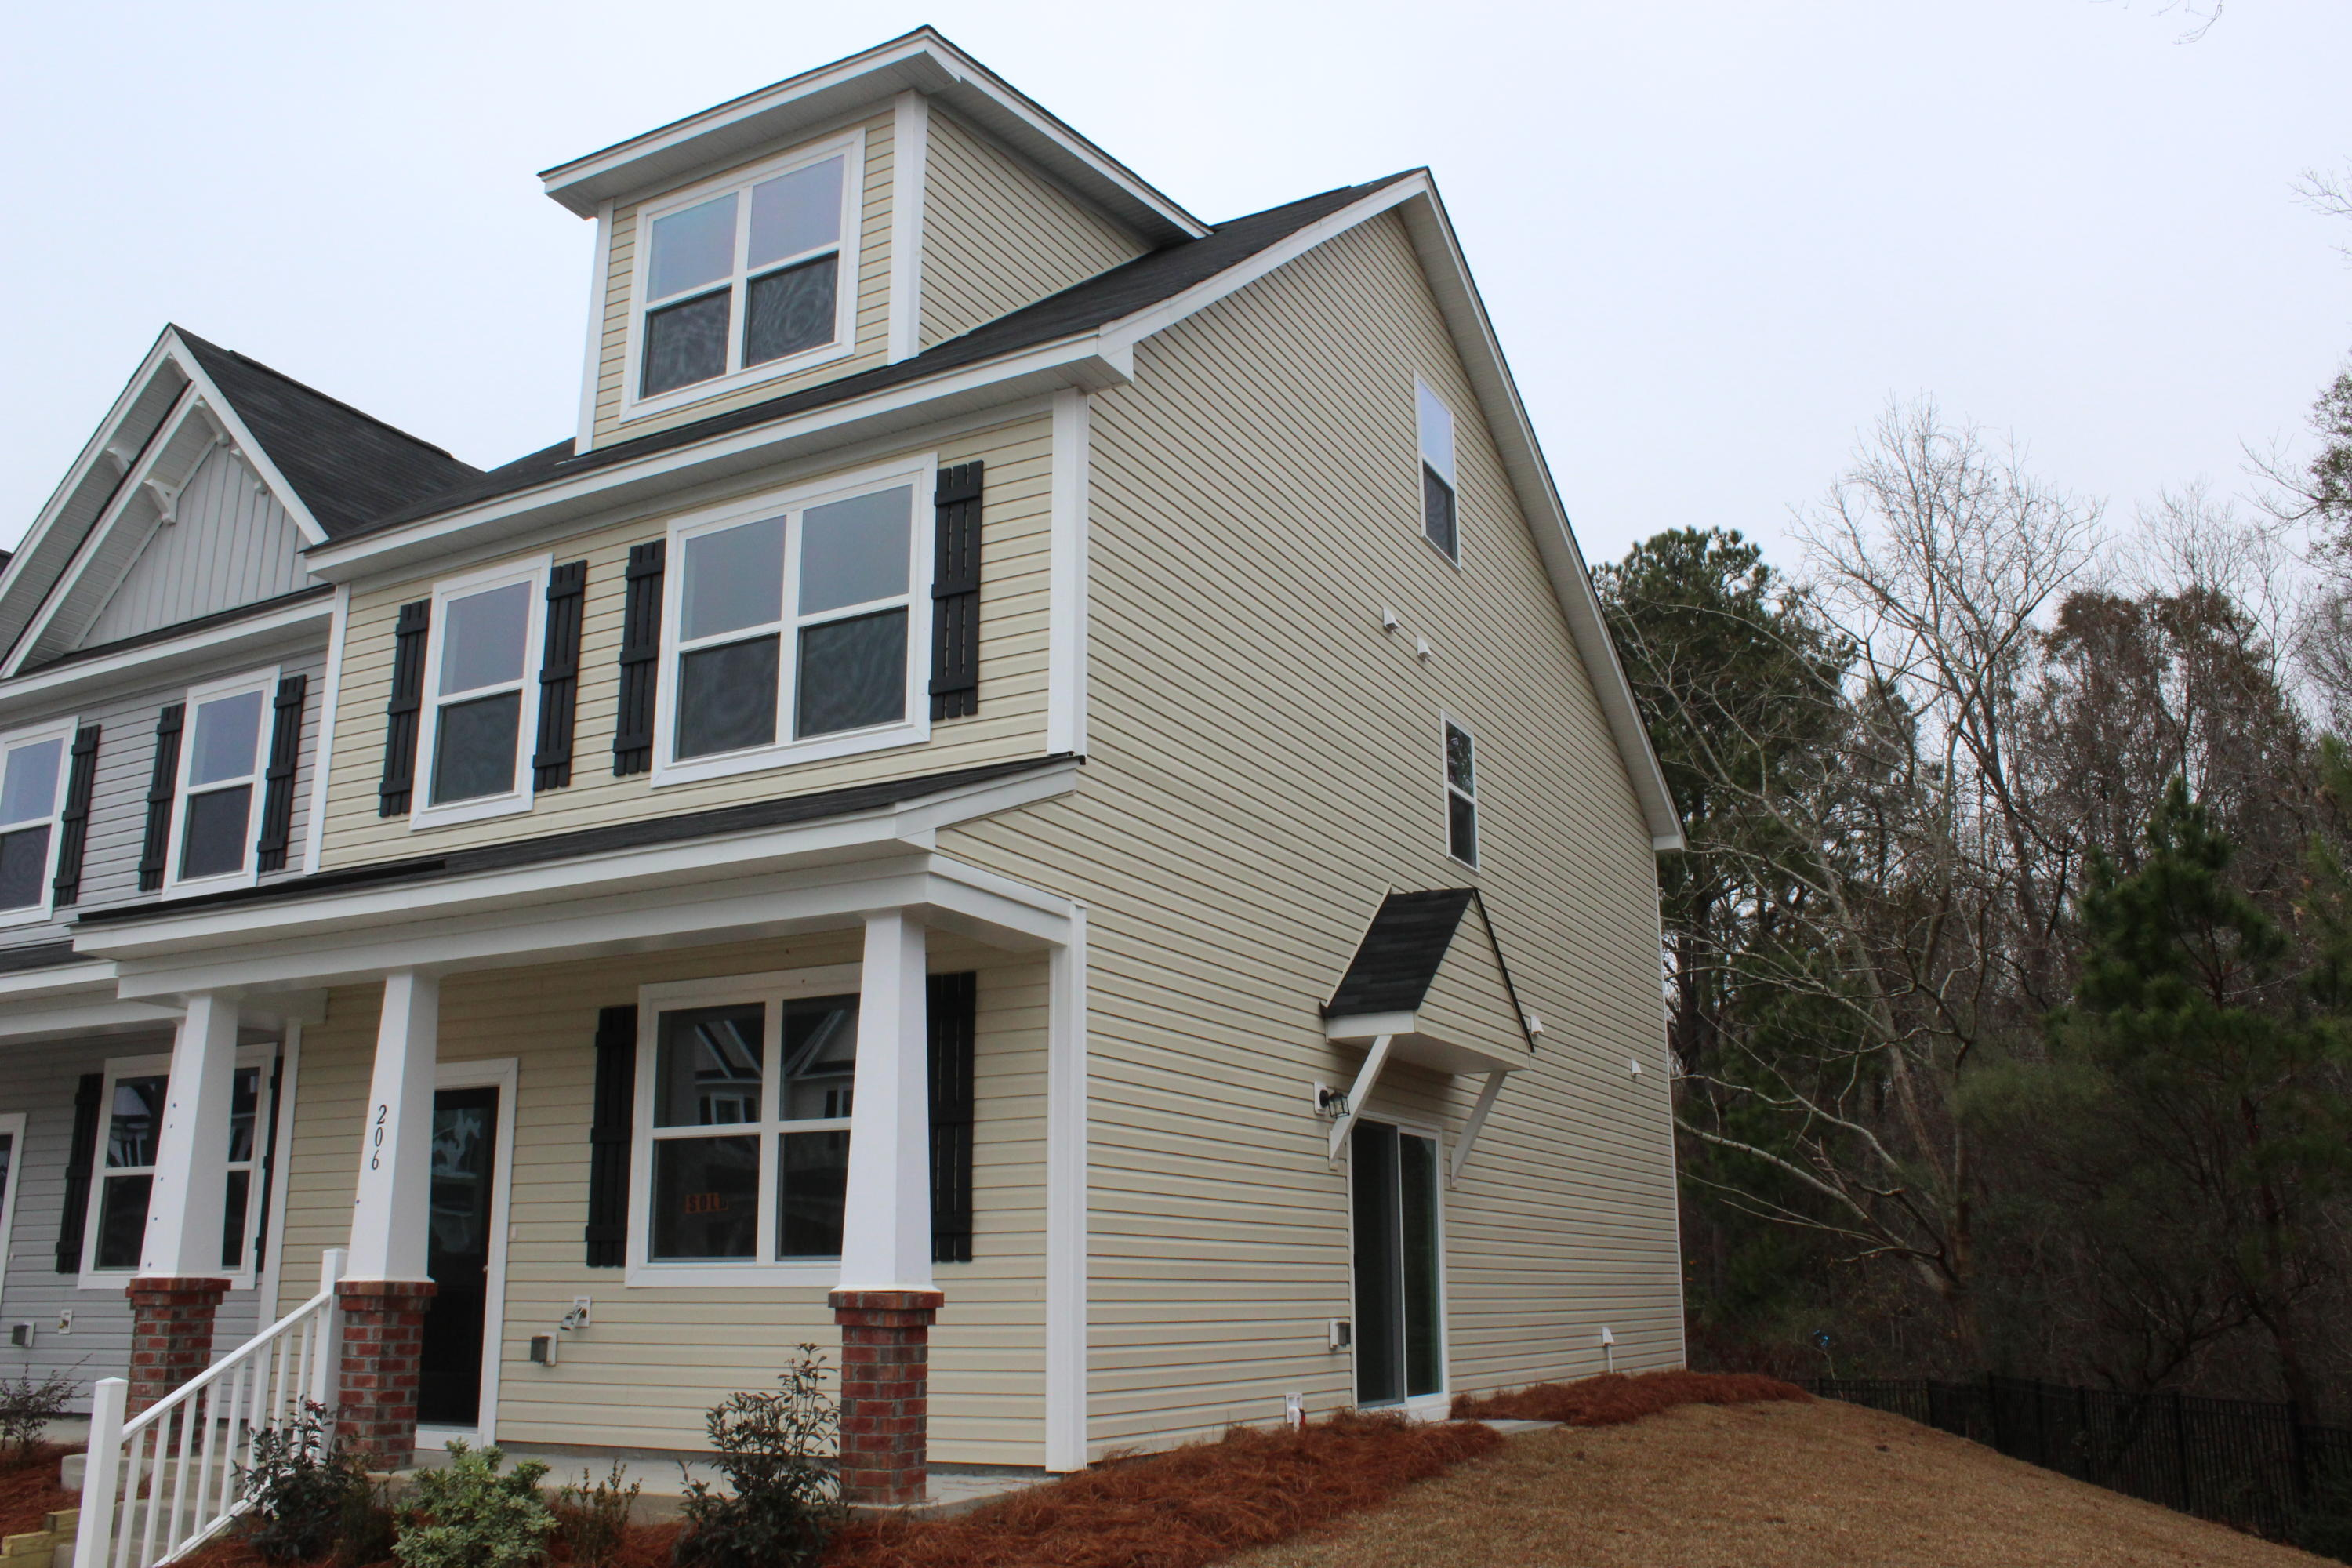 Liberty Hall Plantation Homes For Sale - 206 Woodward, Goose Creek, SC - 23